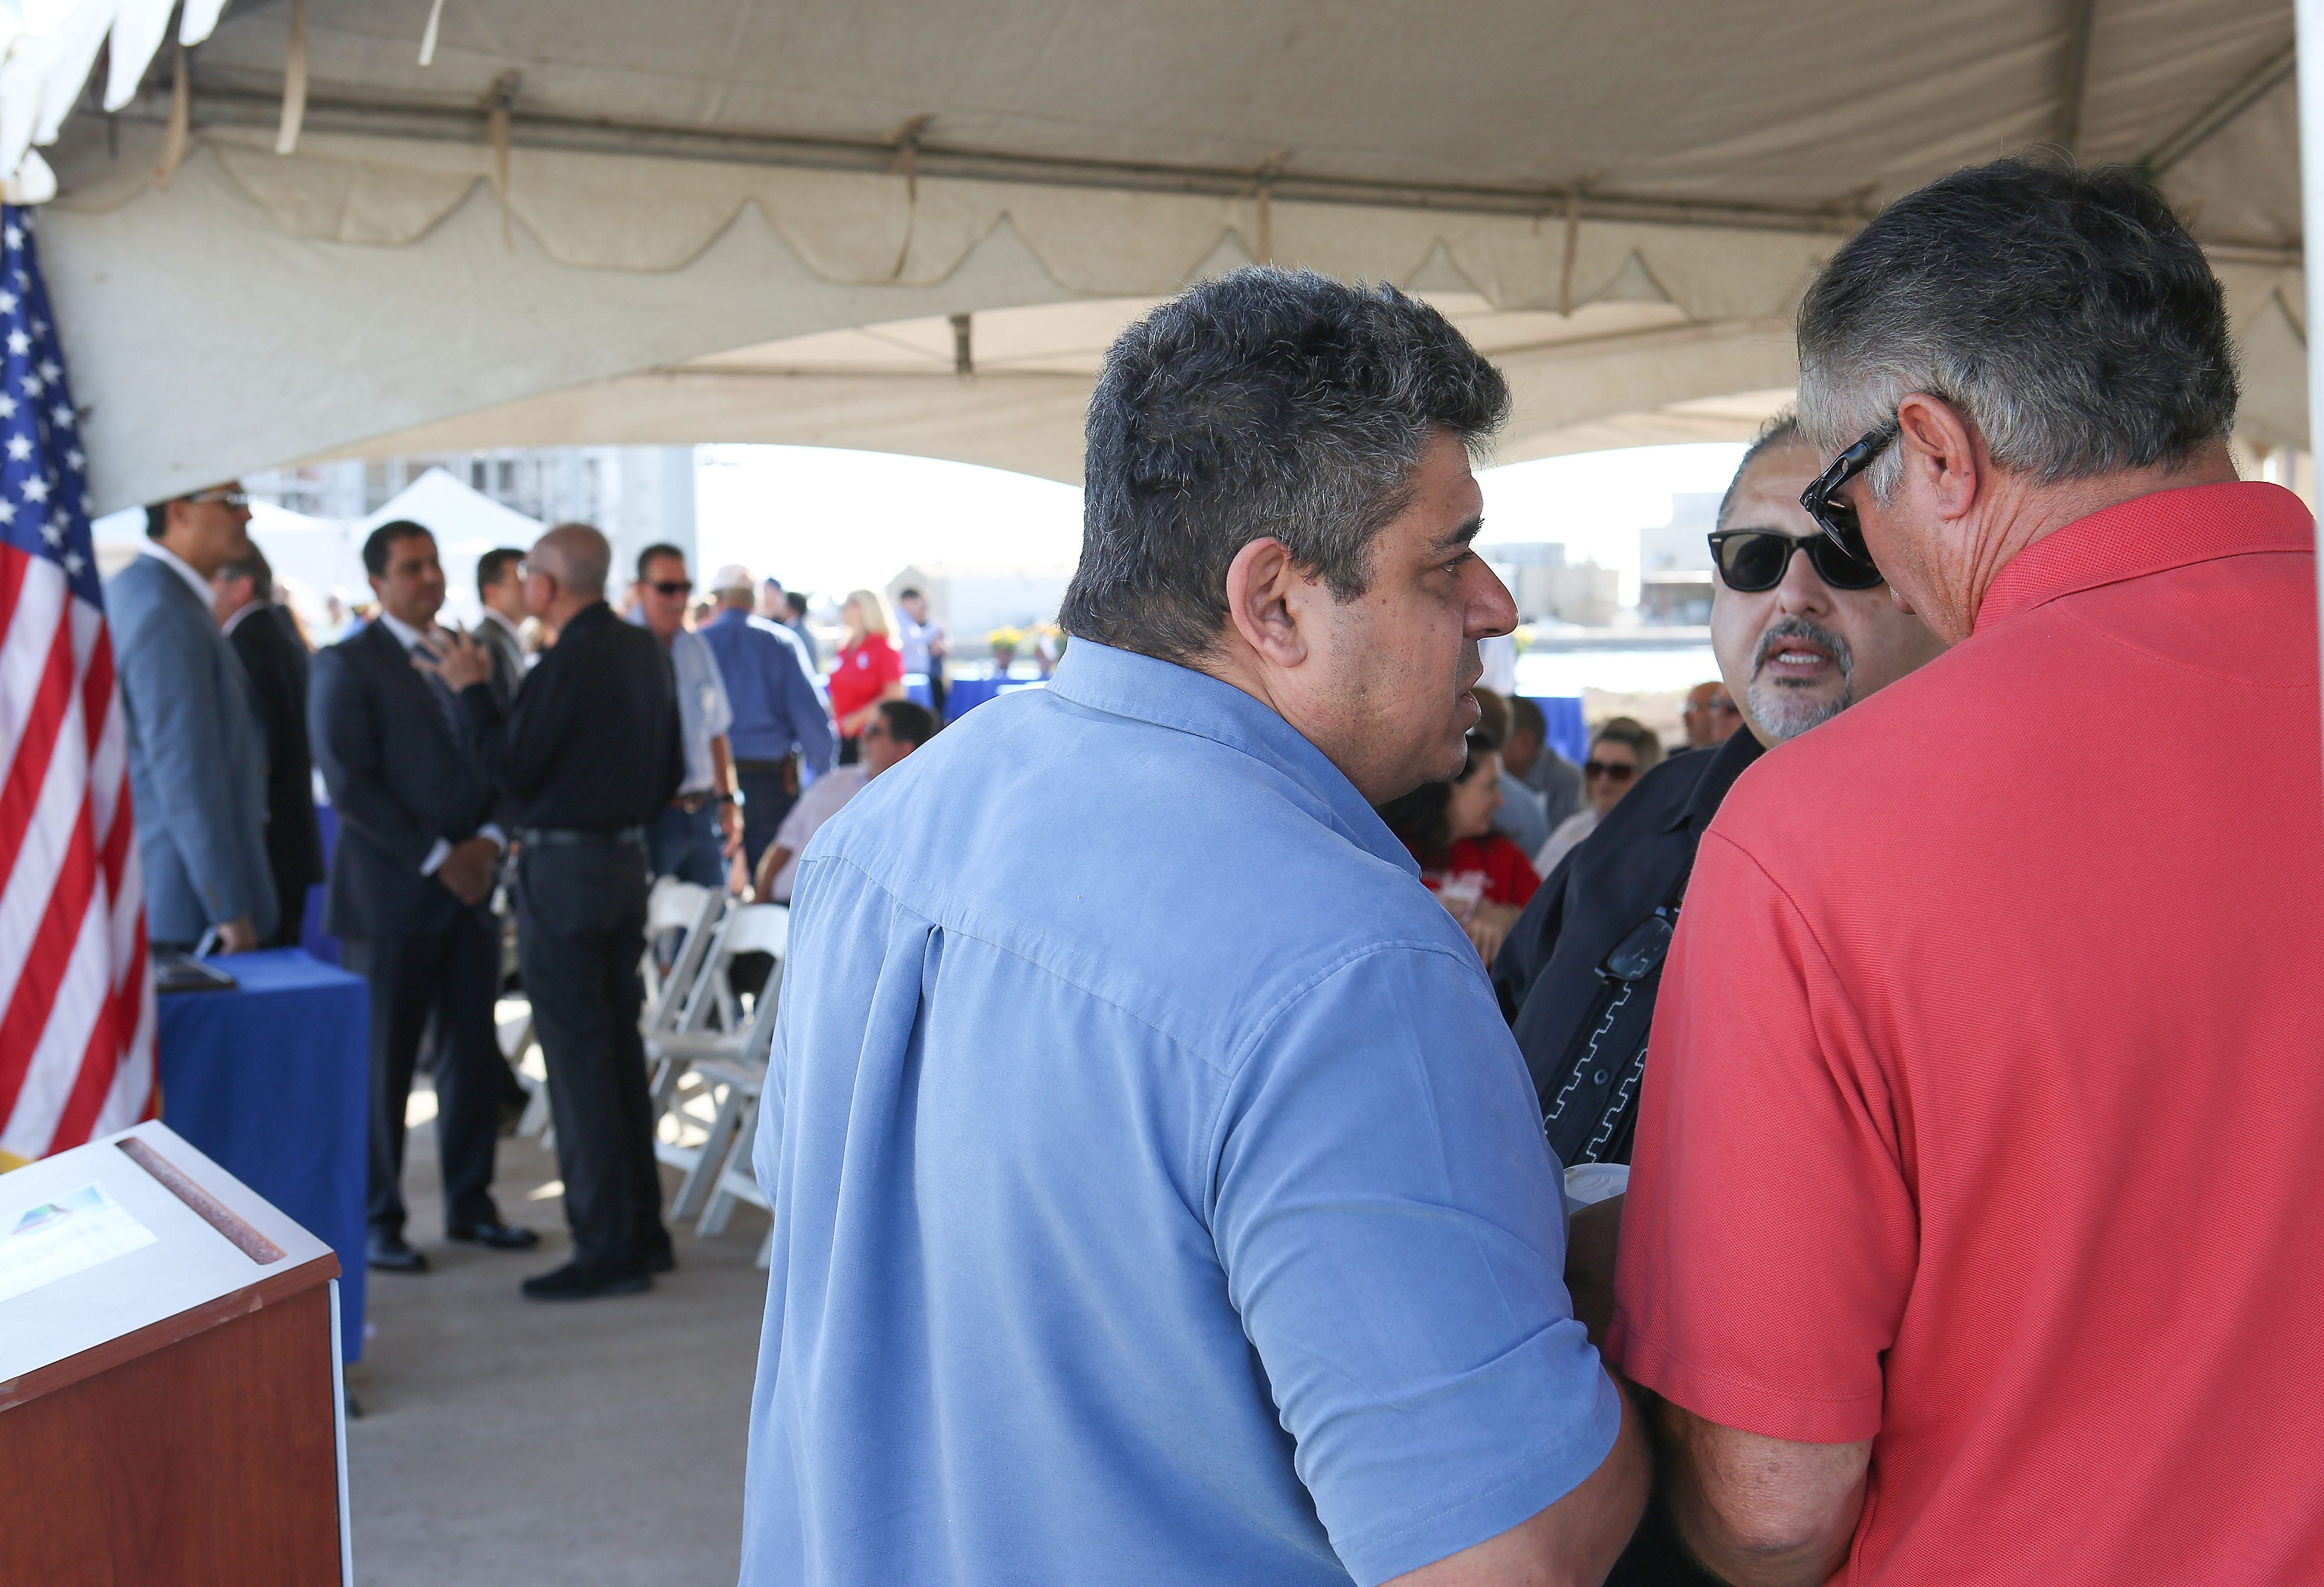 From left: ZGlobal founder Ziad Alaywan, ZGlobal employee Jesse Montaño and former Imperial Irrigation District board member Mike Abatti chat at the dedication ceremony for IID's battery storage project in El Centro, California, on Oct. 26, 2016.